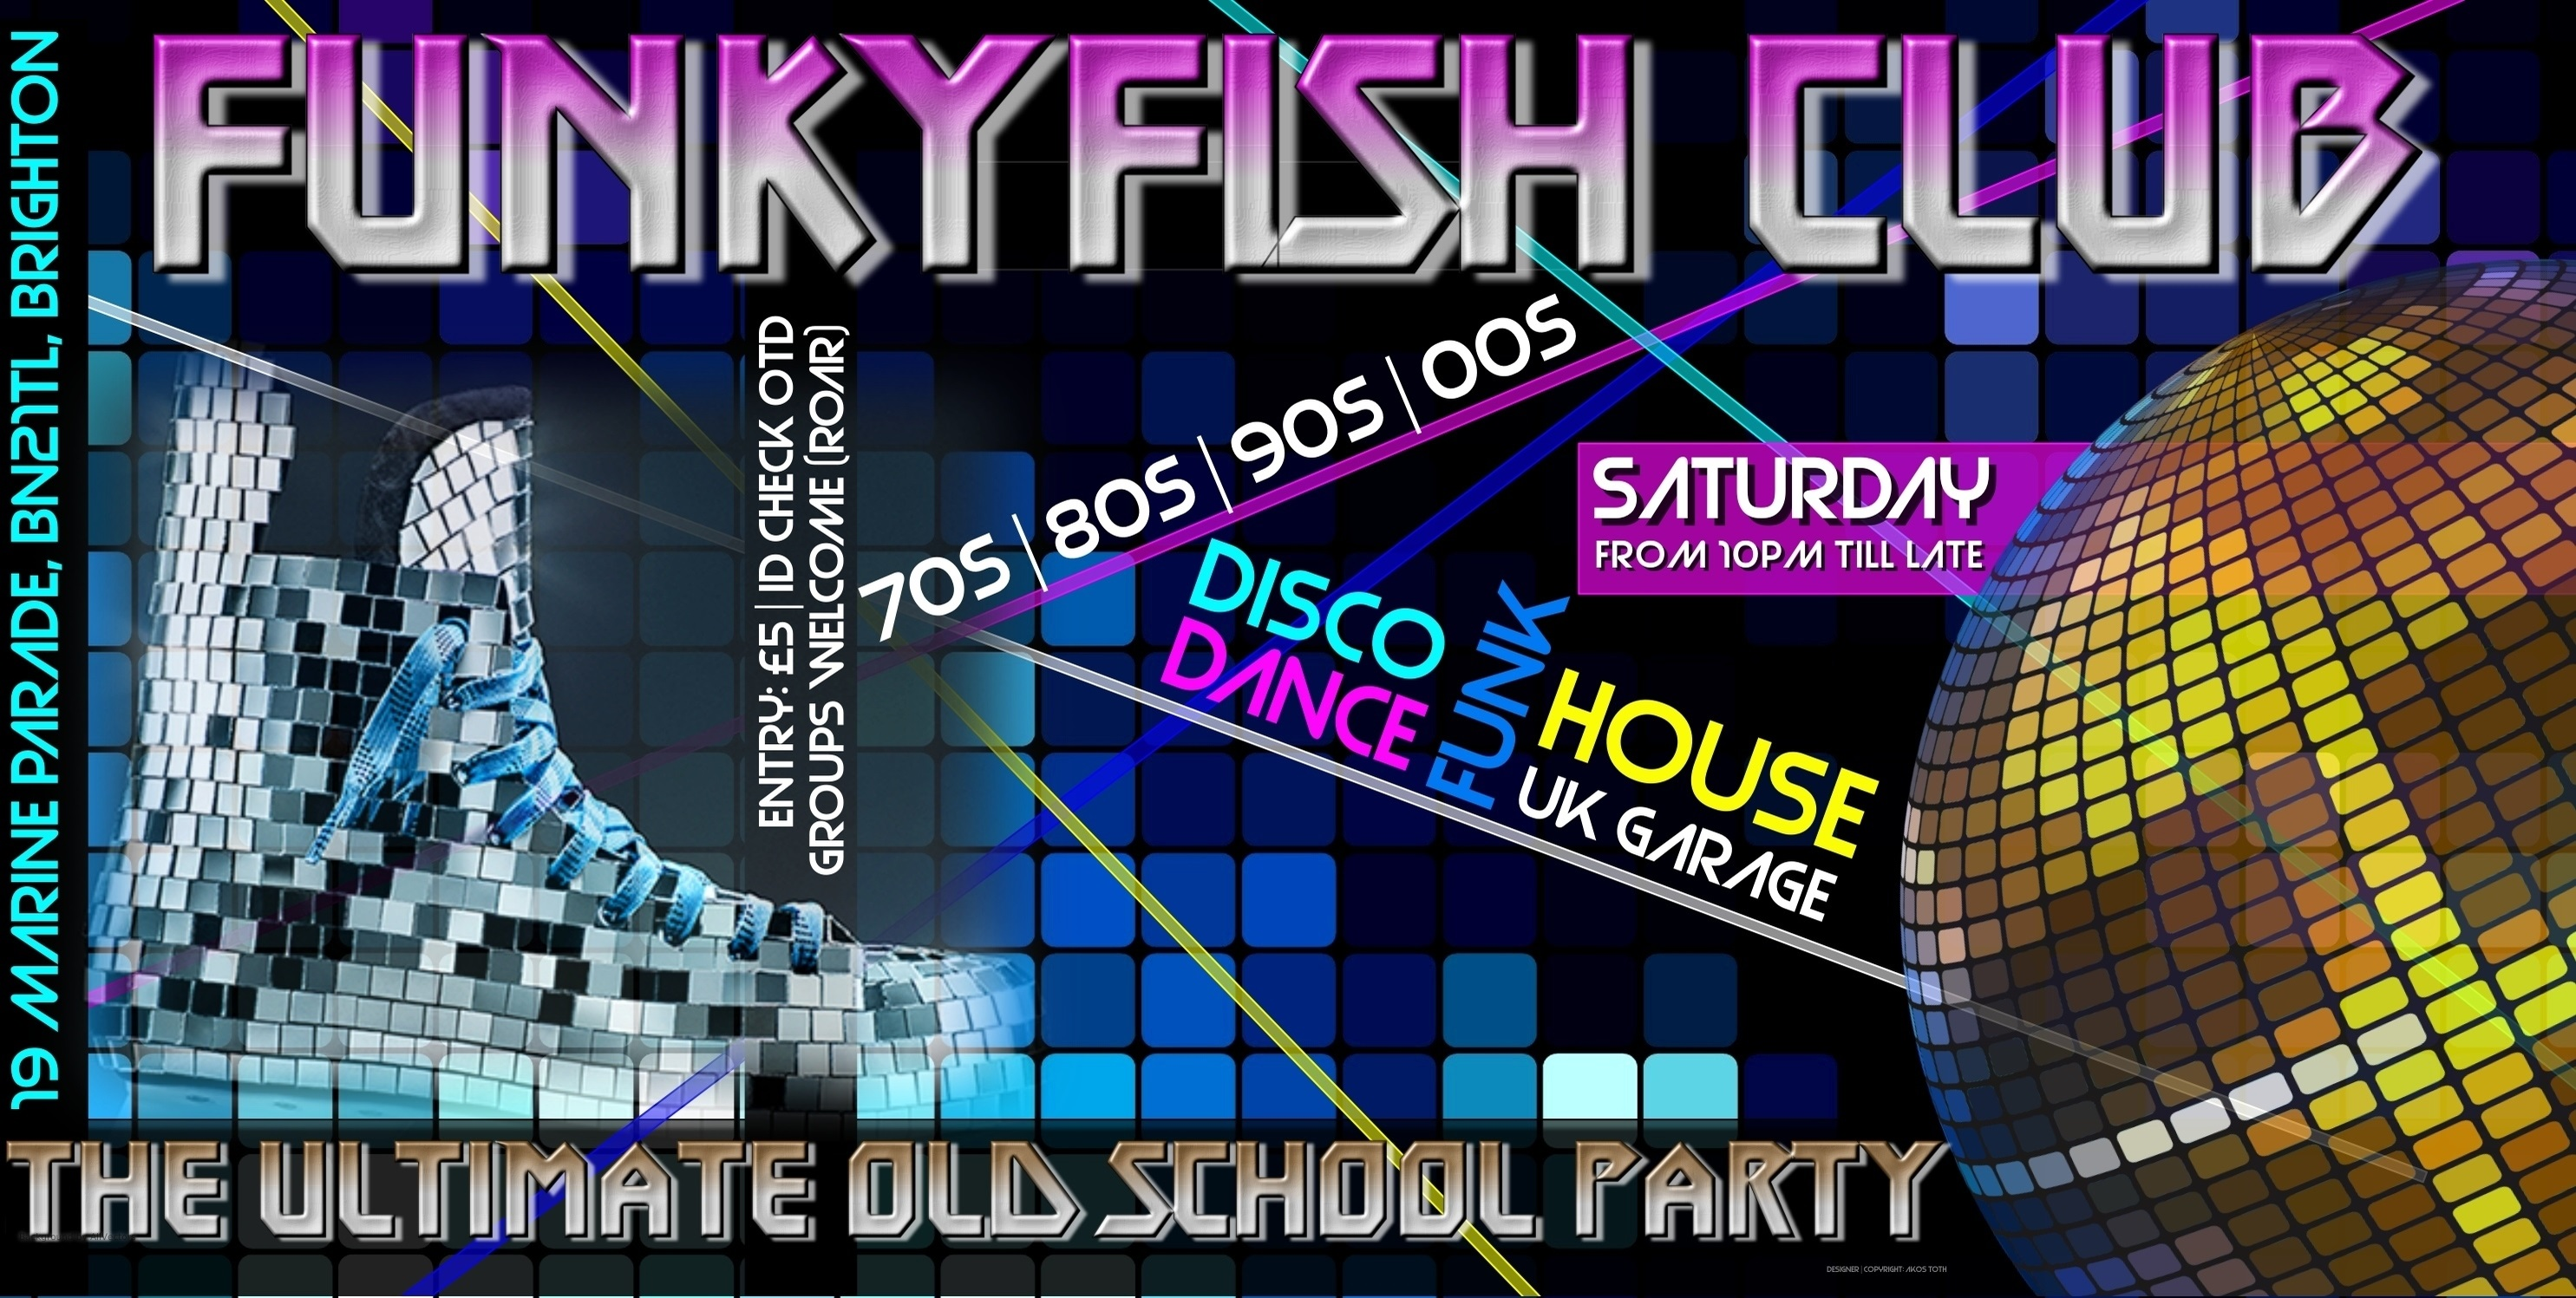 EVERY SATURDAY - THE ULTIMATE OLD SCHOOL PARTY